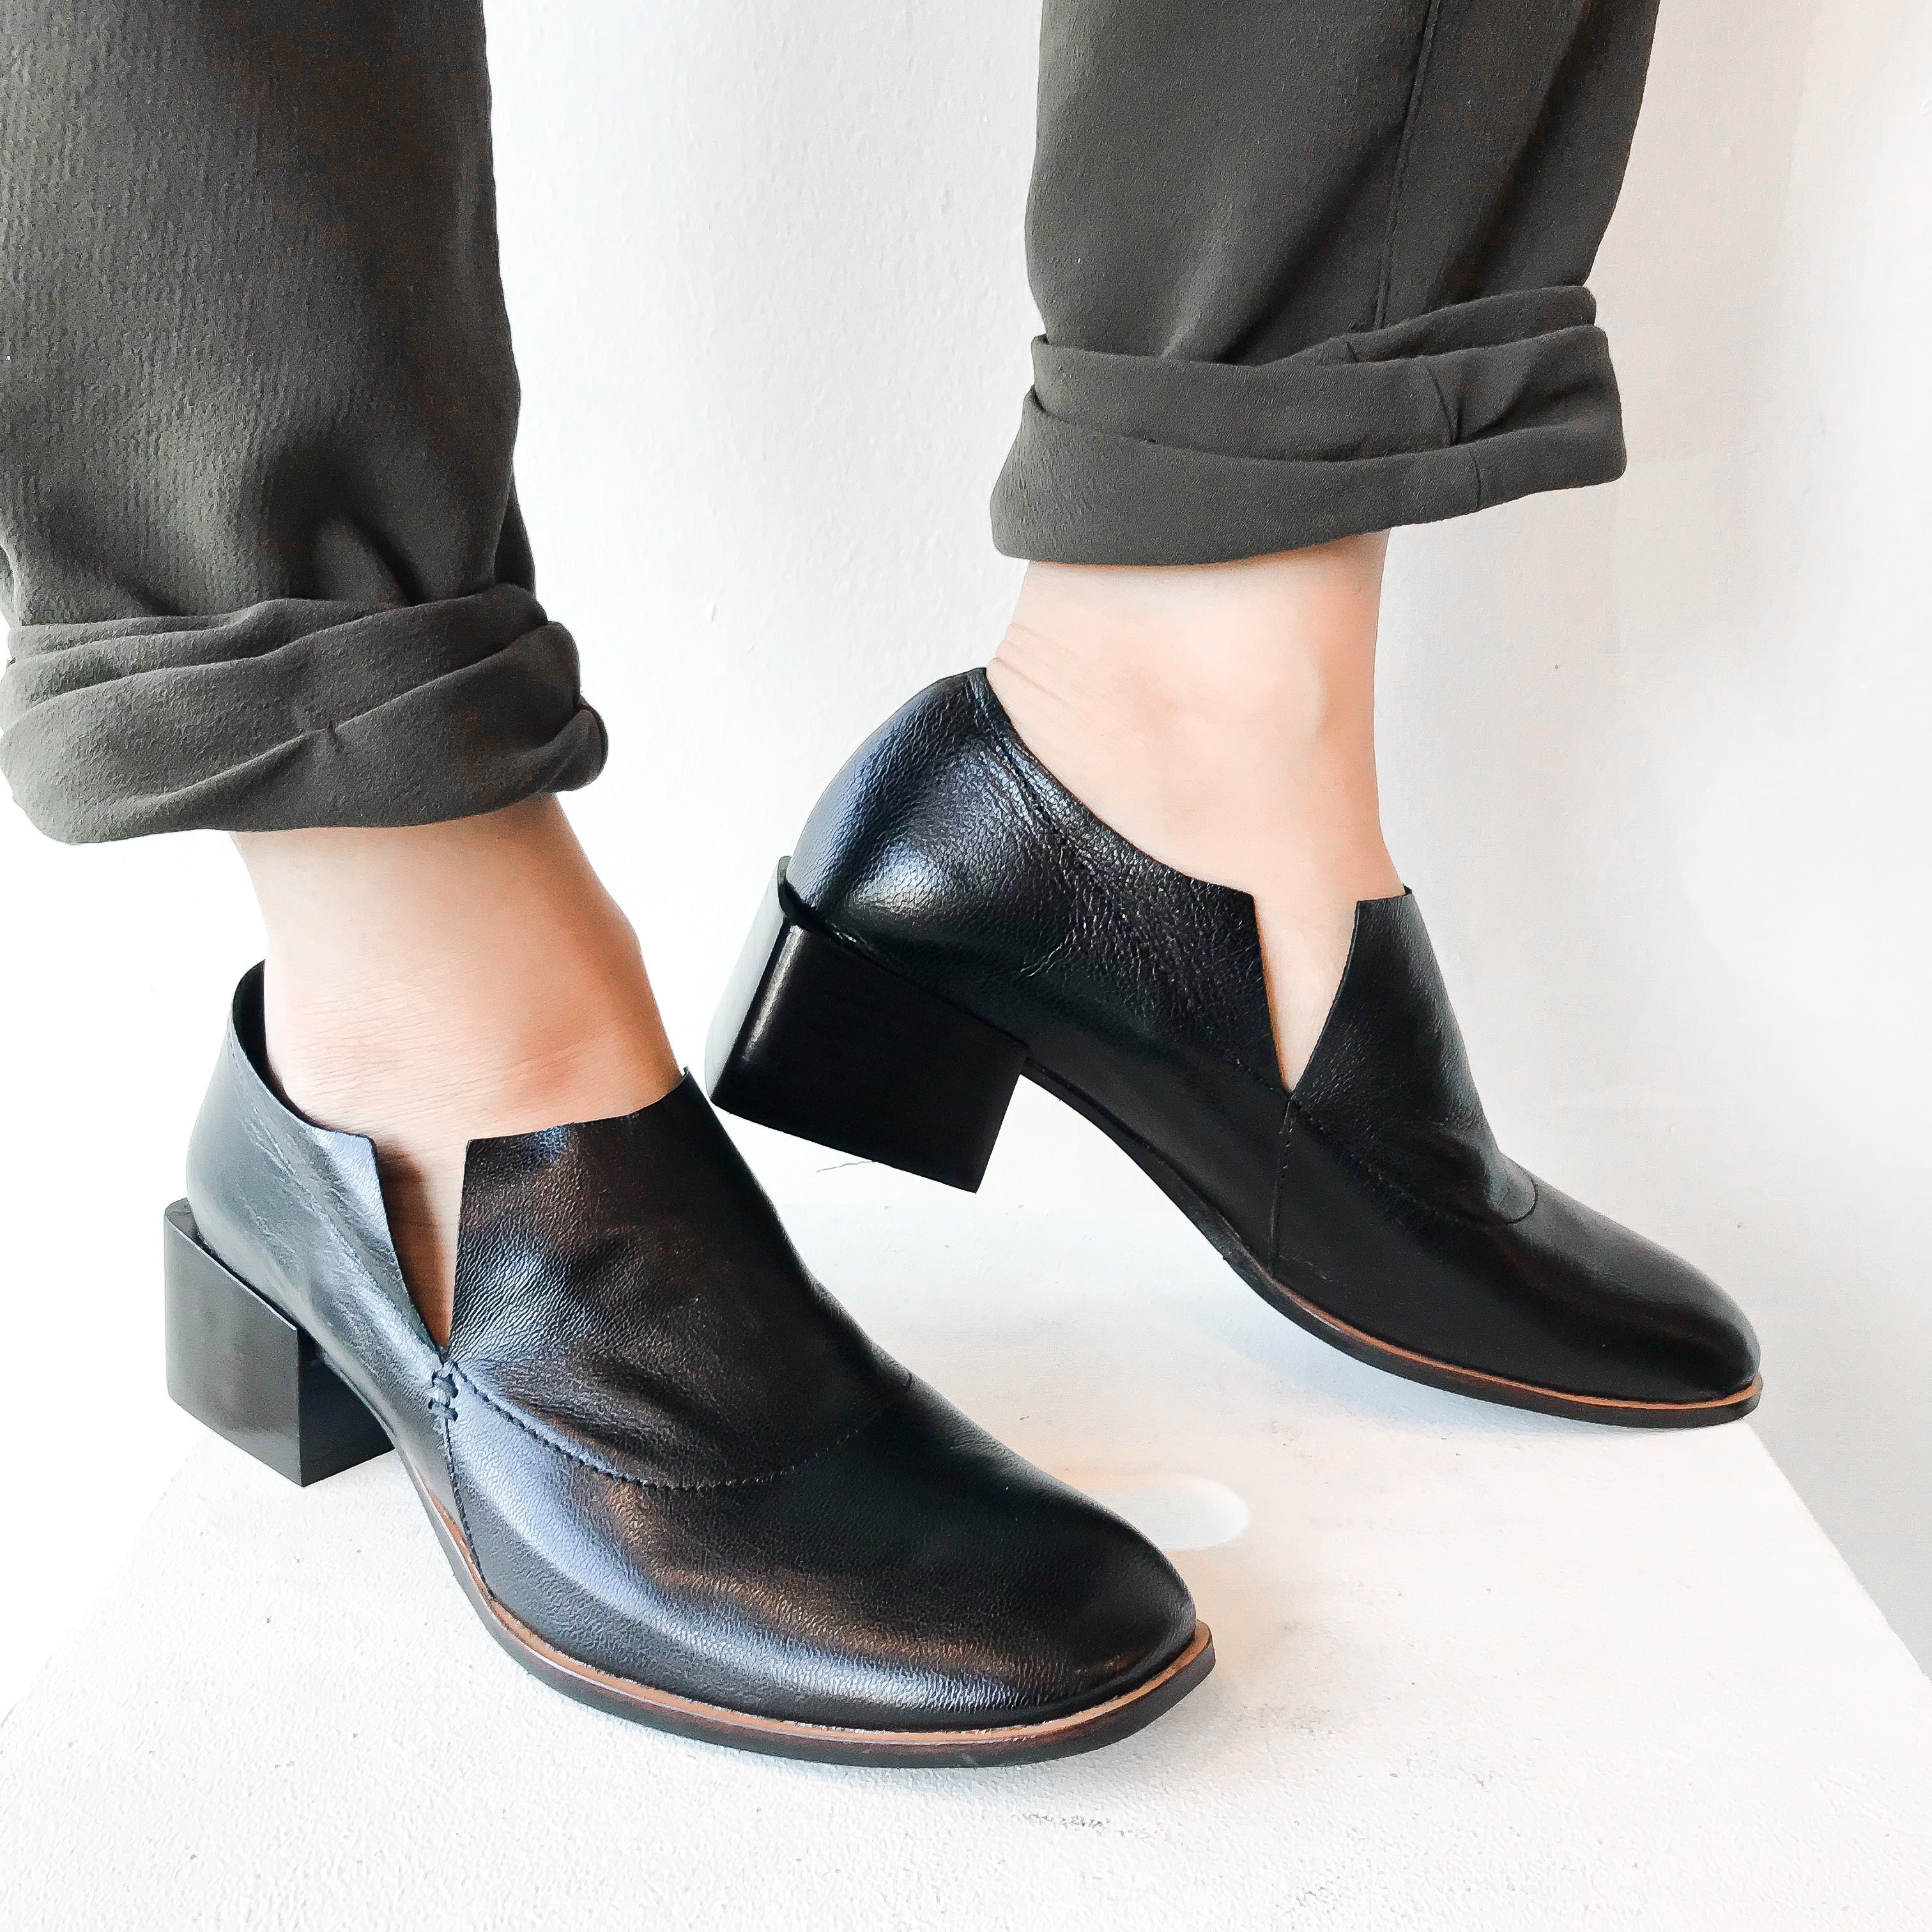 FW20 701063 | Unlined Heel Art Loafers - Black | Yuko Imanishi+